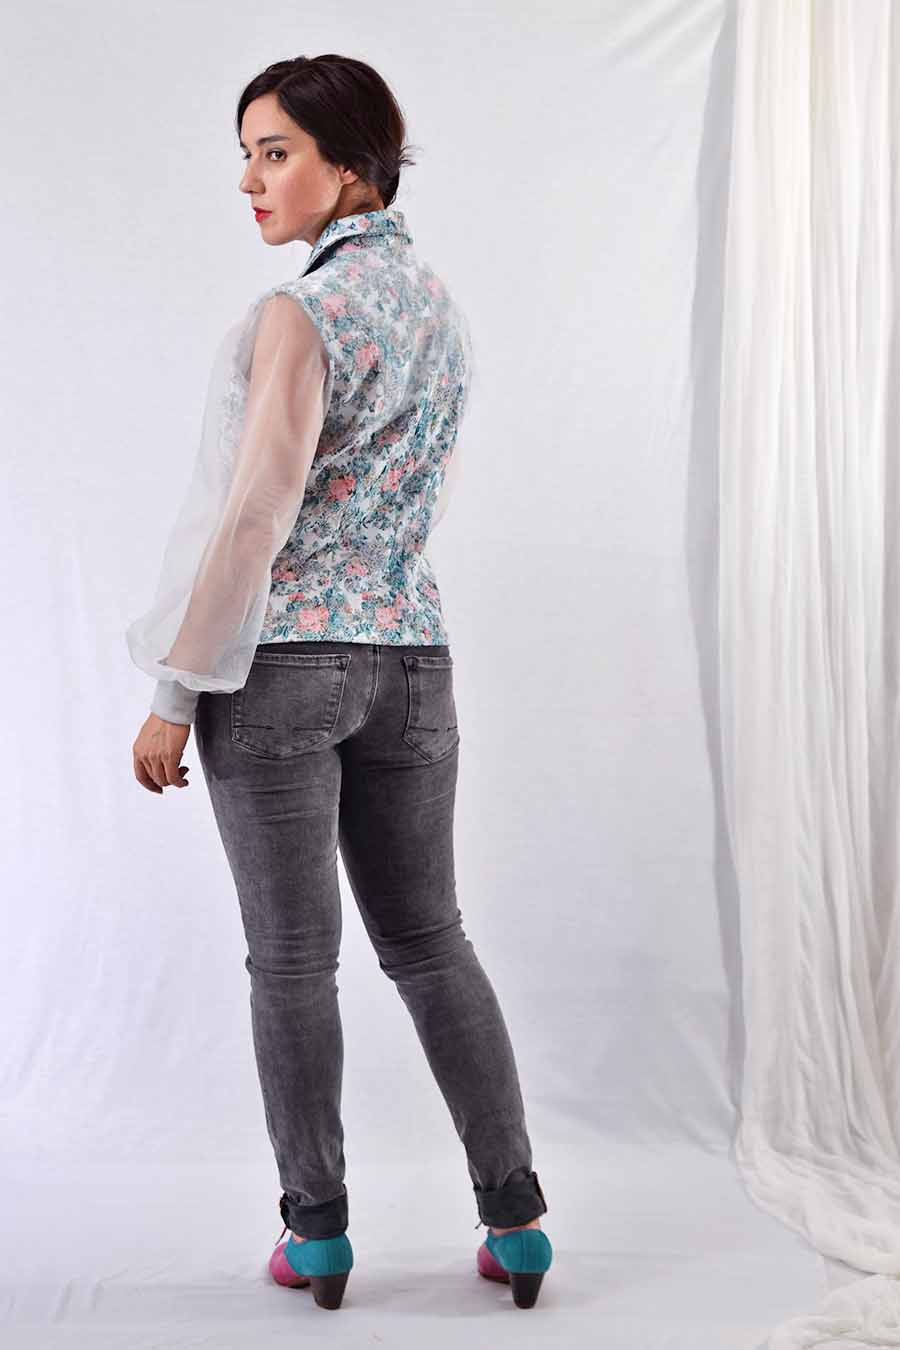 Spring jacket with pastel floral jacquard print and tulle sleeves from back